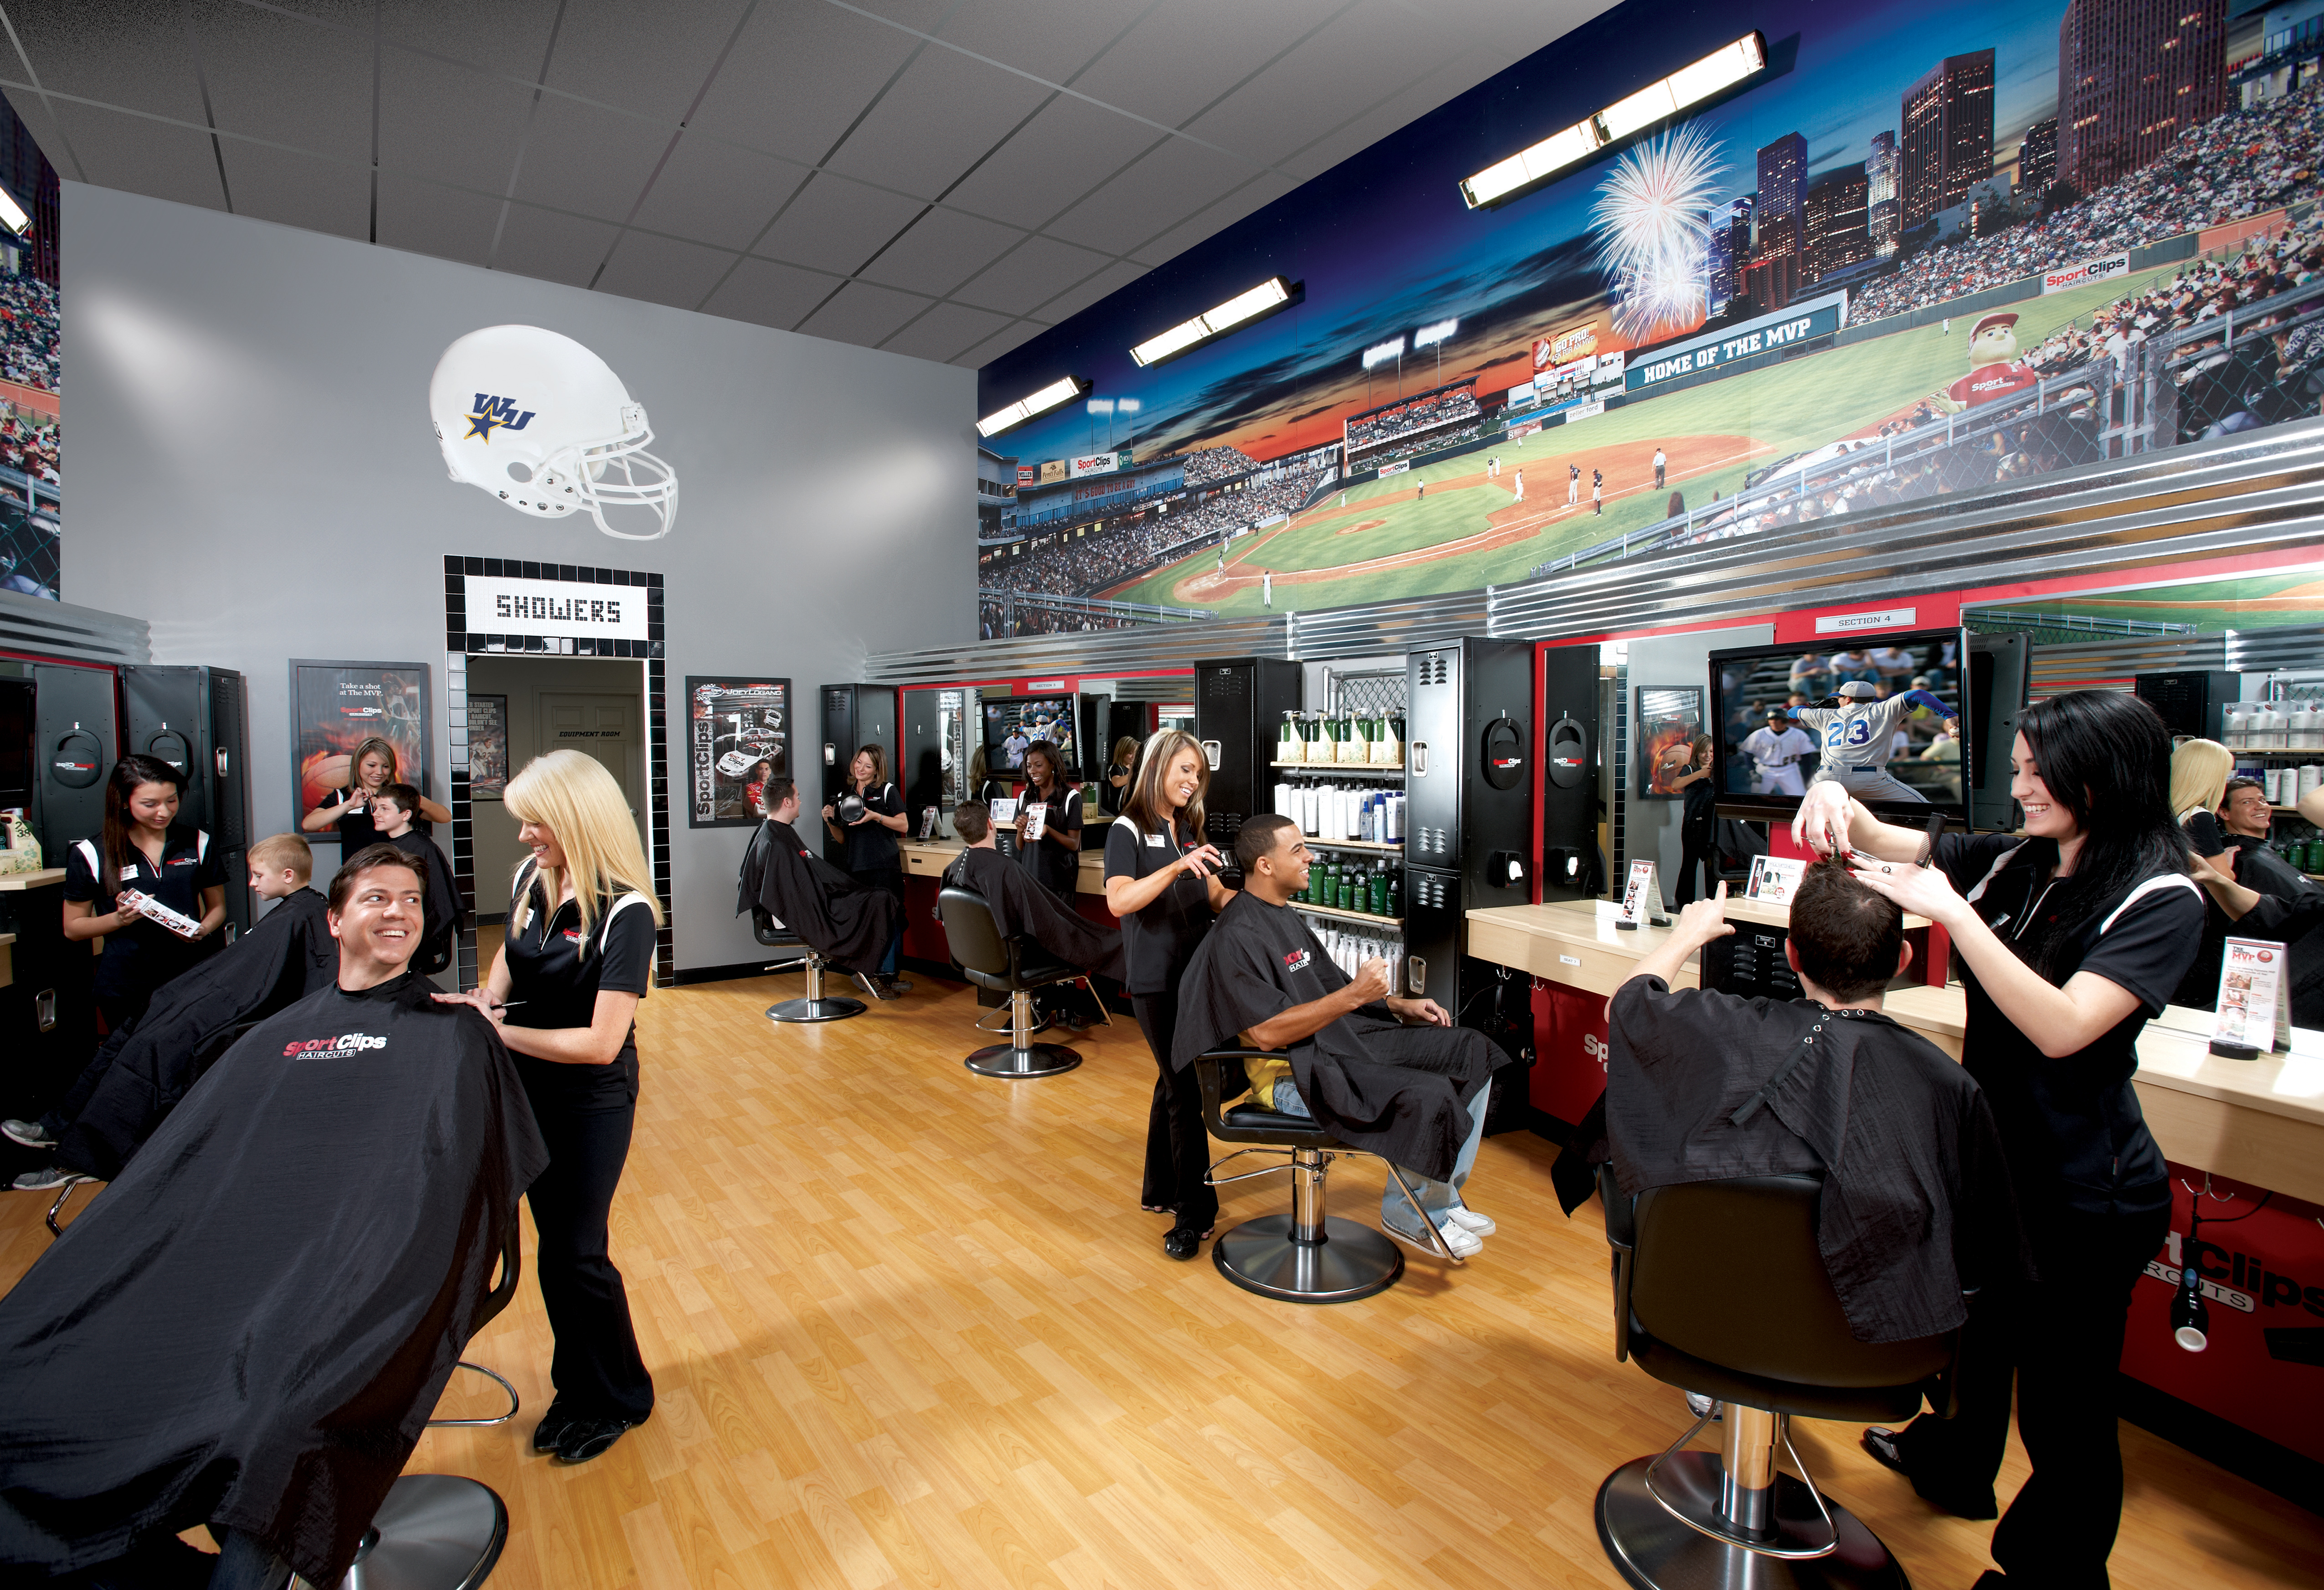 clips sport haircuts prices location tampa third opens mvp georgetown varsity fl